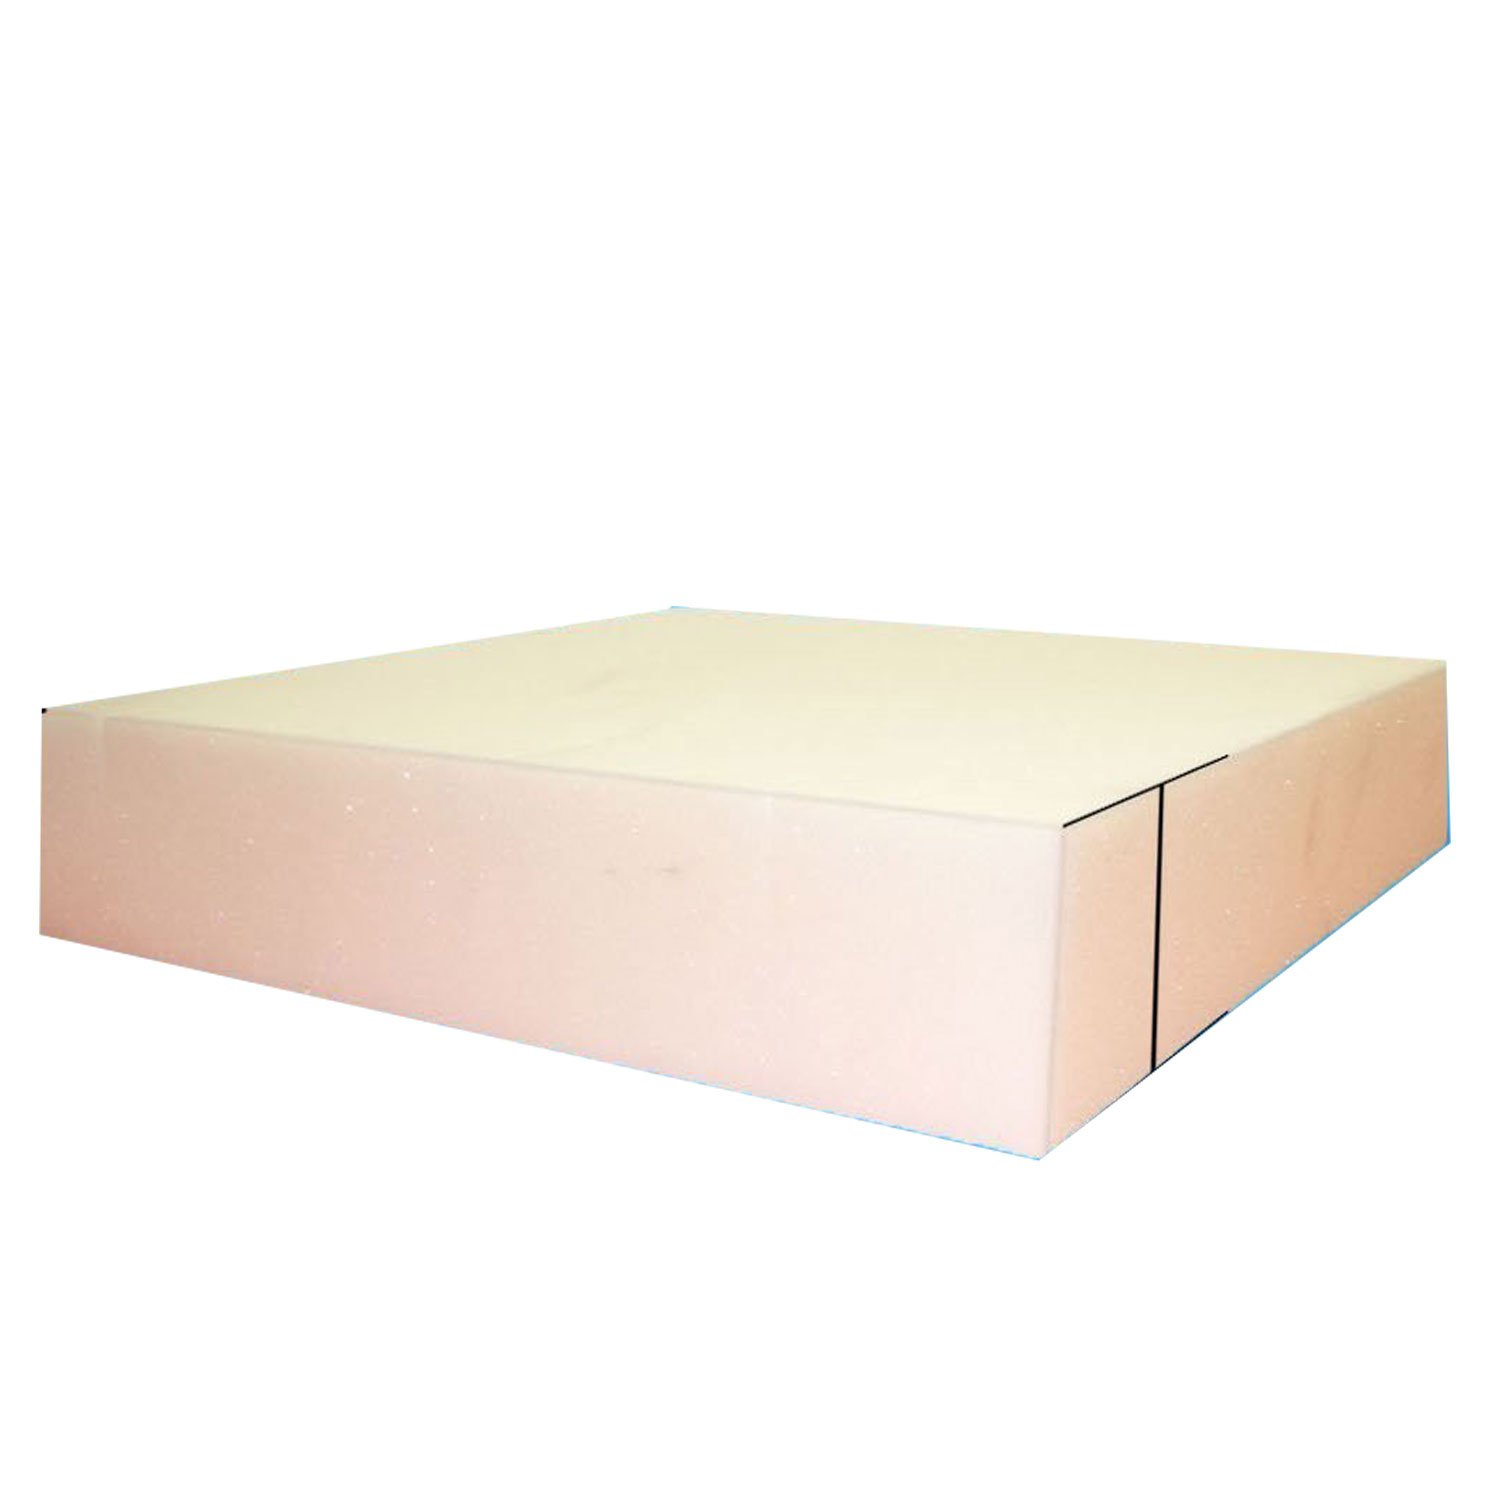 """Mybecca 5"""" x 24"""" x 24"""" New Density Upholstery Foam Cushion (Seat Replacement, Upholstery Sheet, Foam Padding) New and comfortable soft technology with high density"""